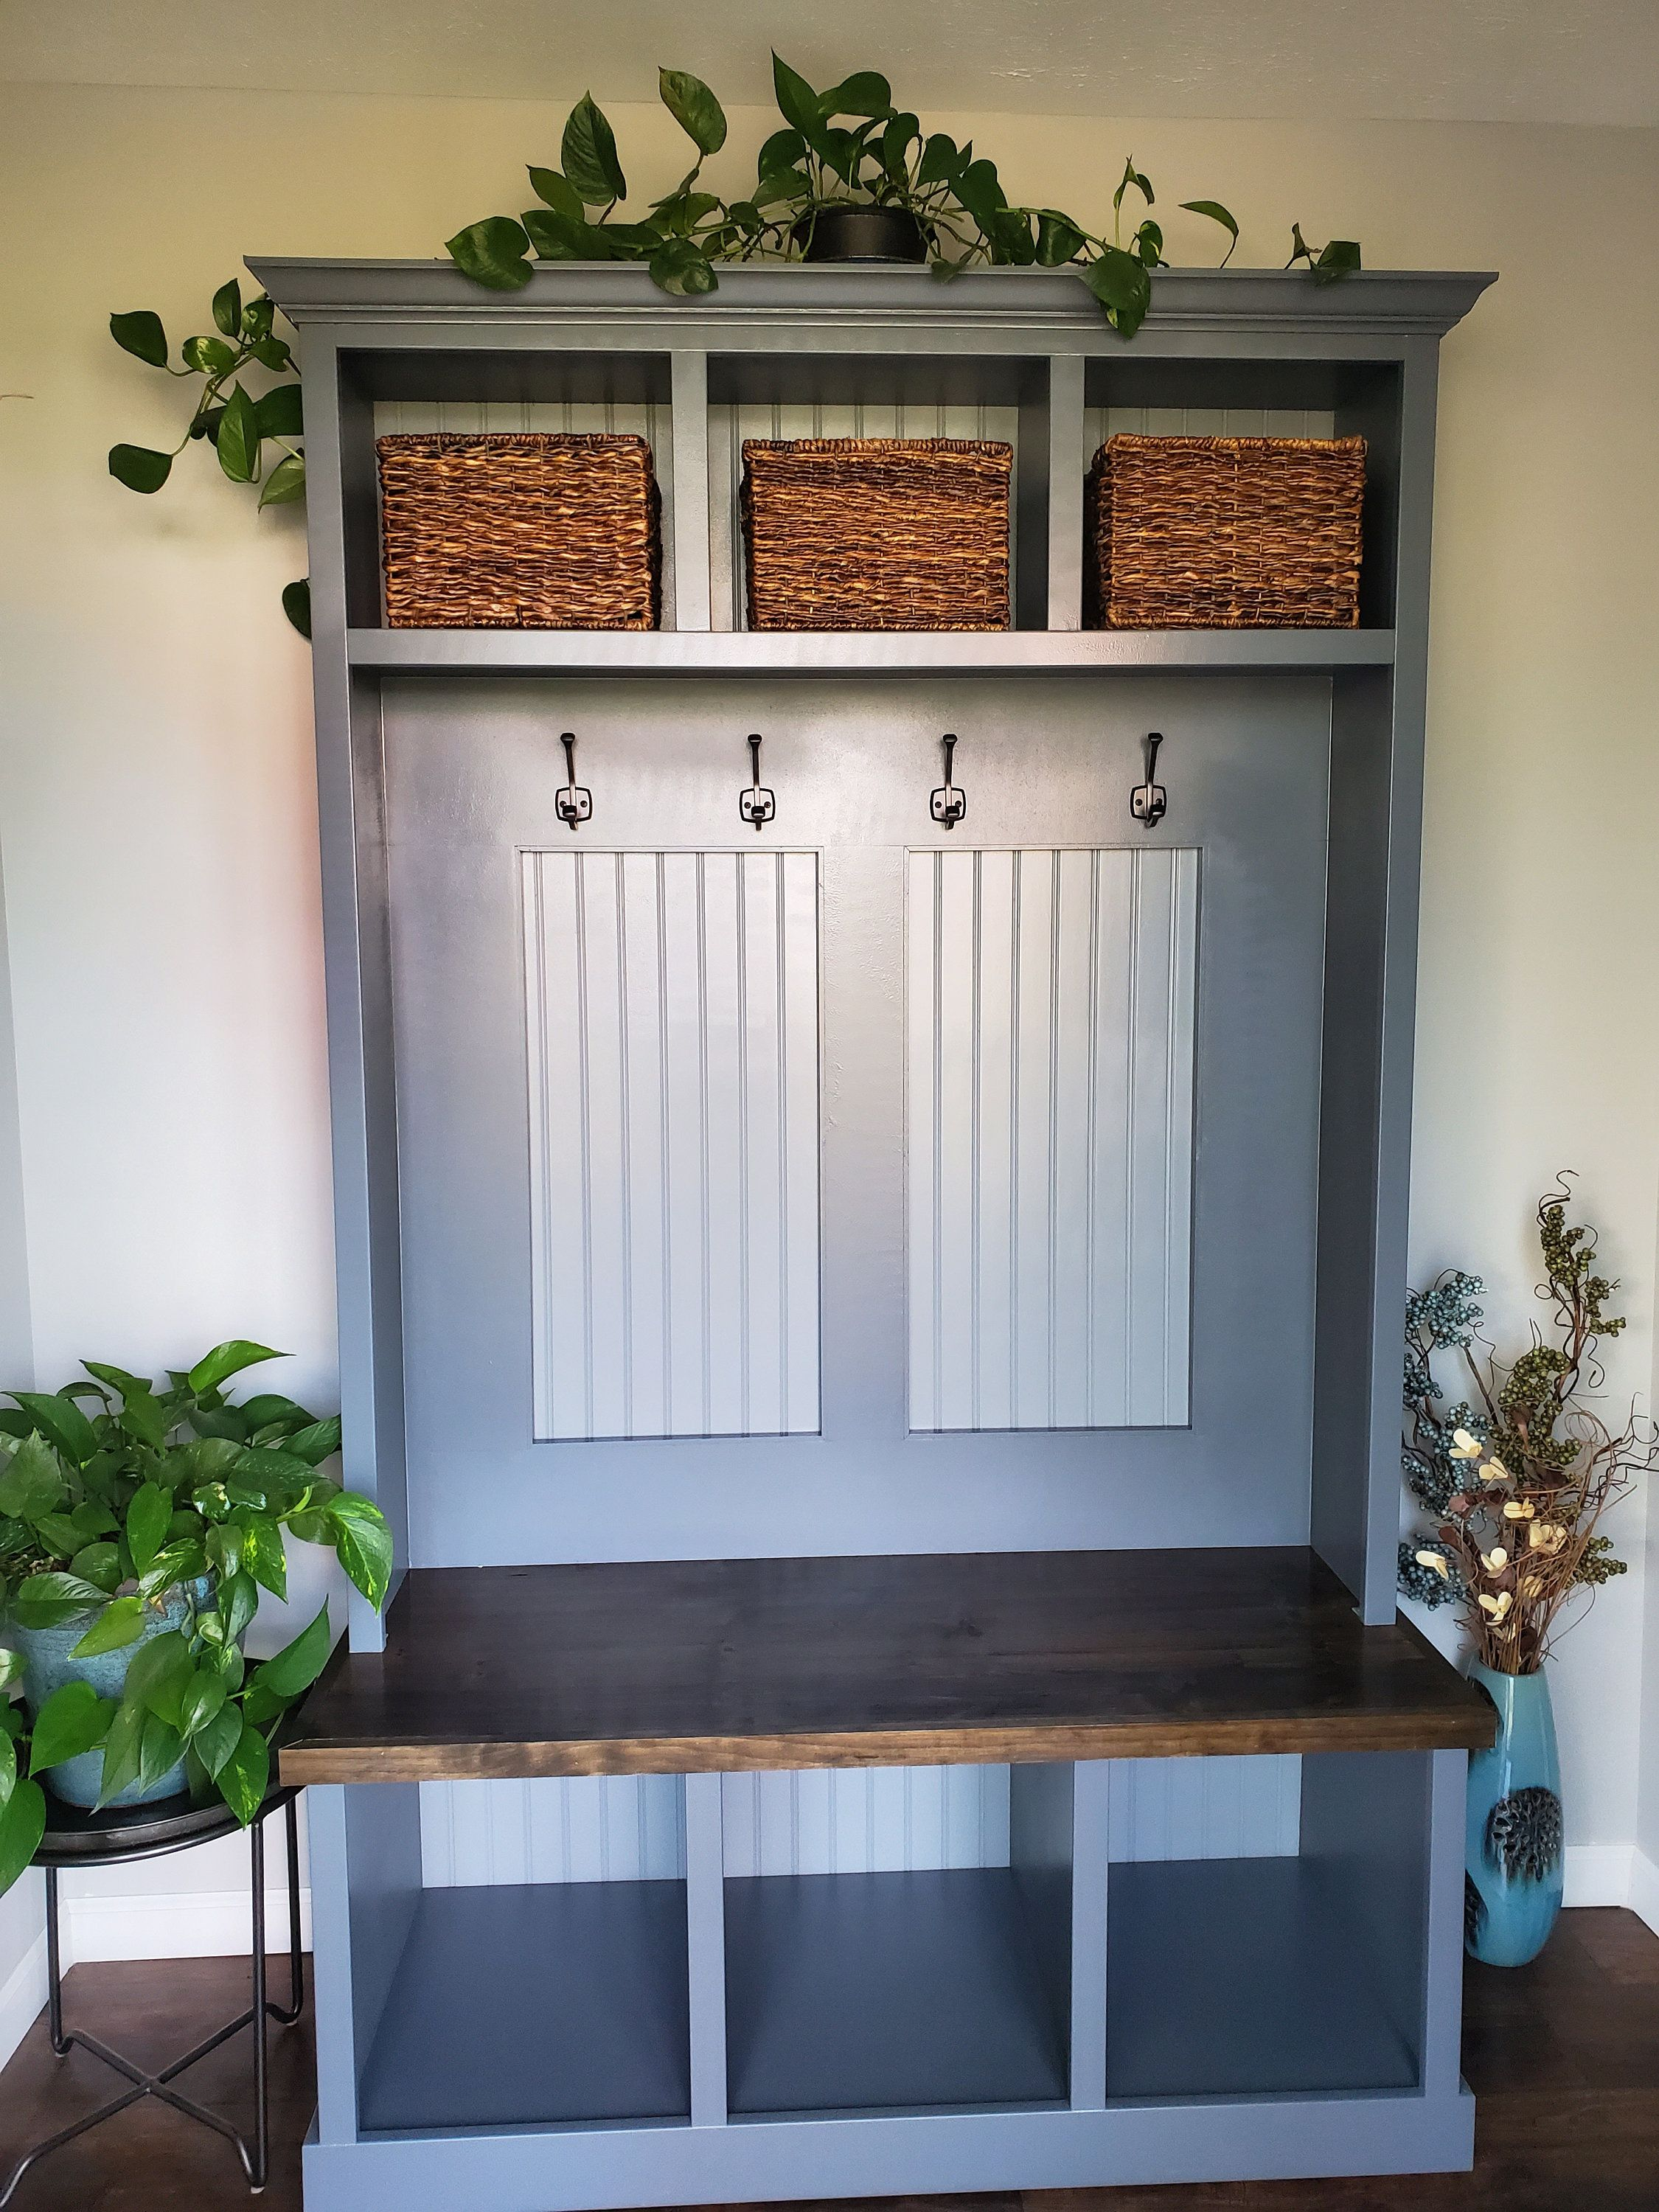 Custom Mudroom Storage/ Coat Rack With Bench And Storage/HallTree/Mudroom Locker